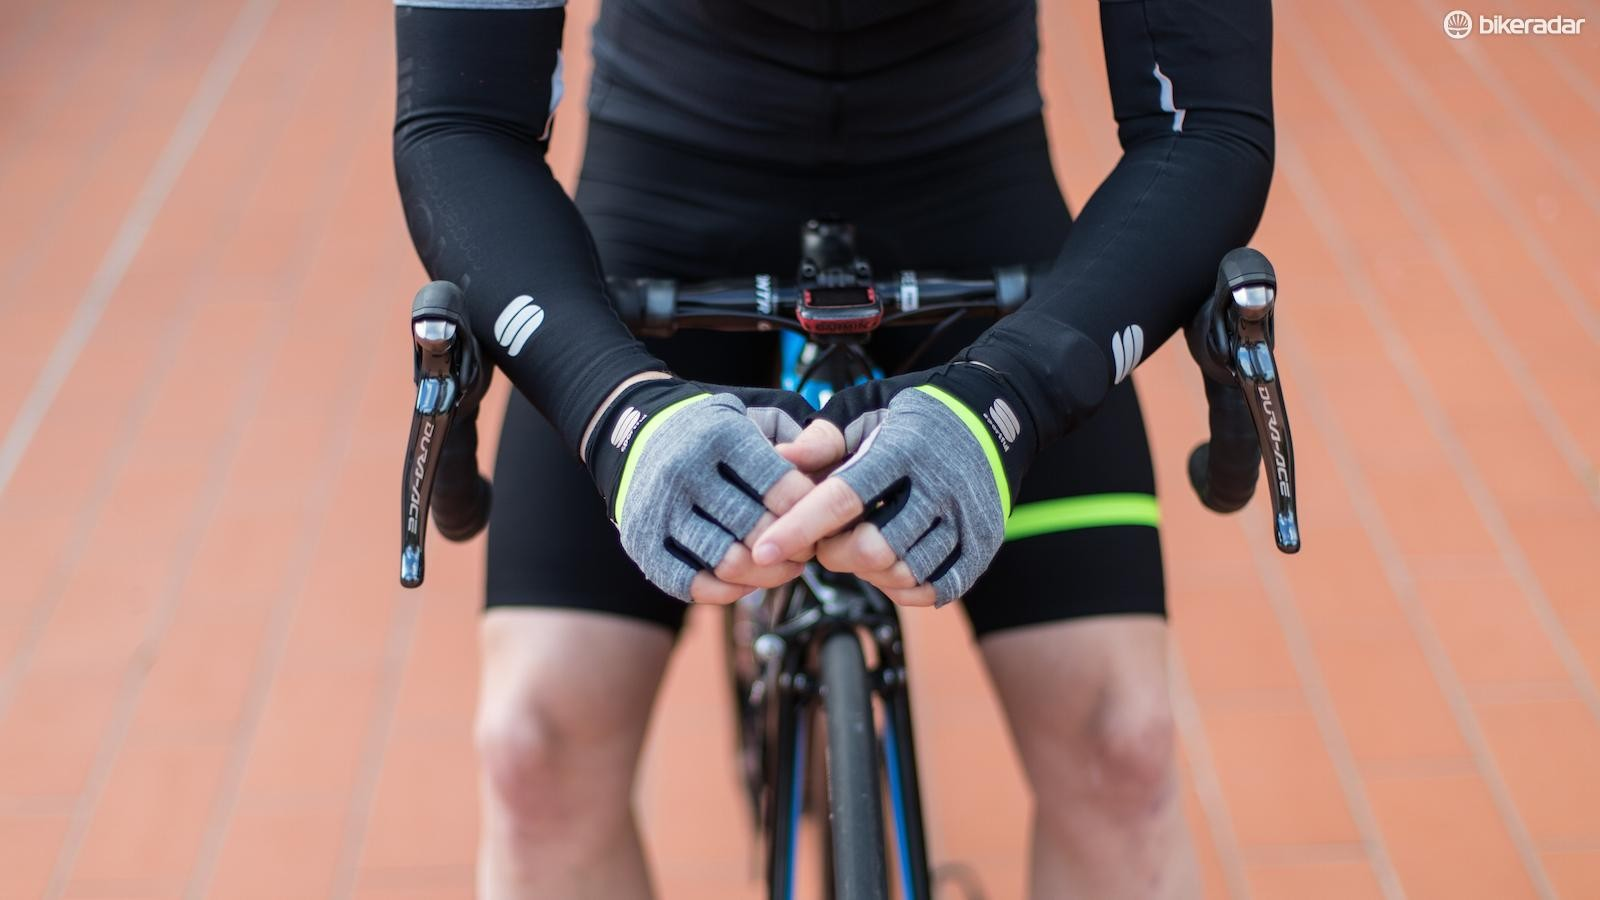 The Giara gloves match the rest of the kit and feature extra padding in the palm